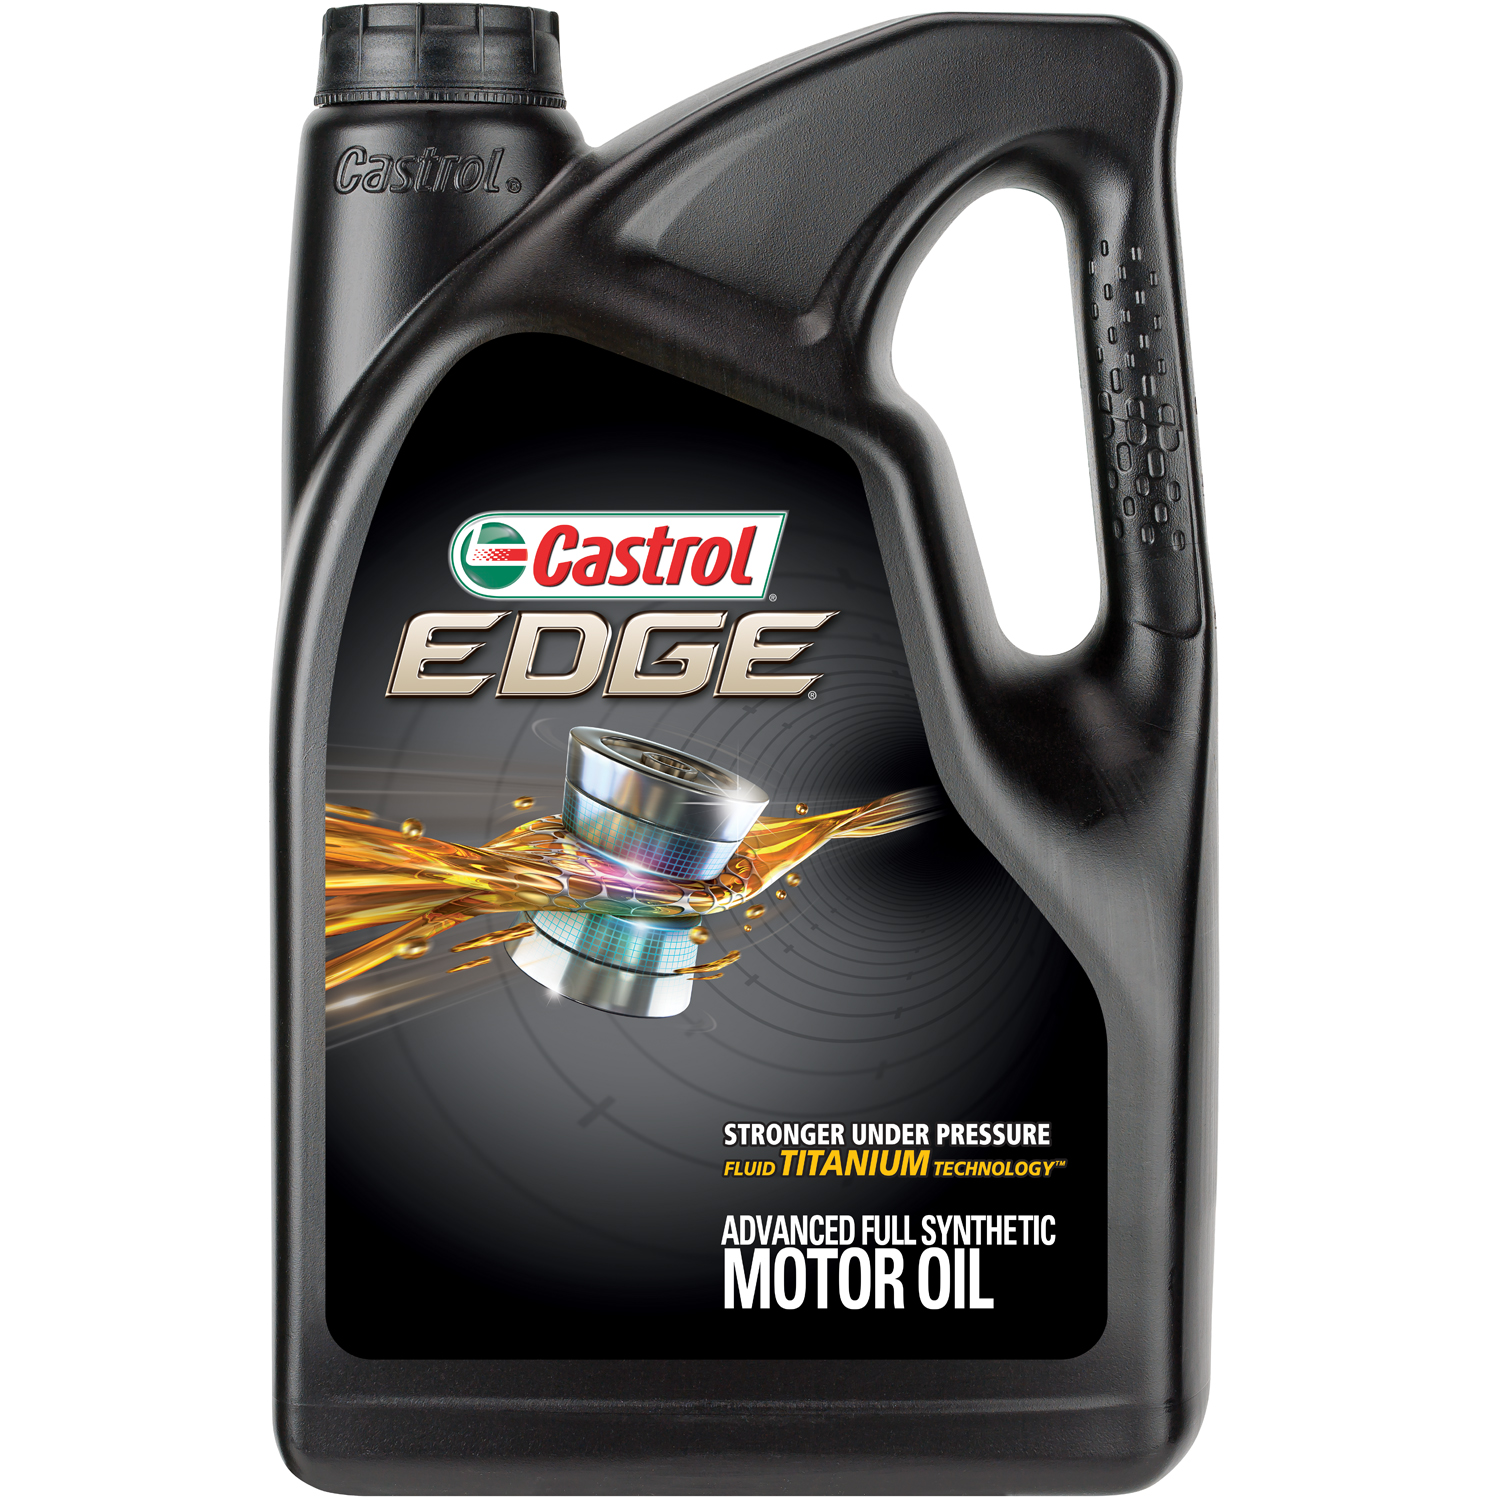 Premium Full Synthetic    $89    Required for some foreign models like VW, Mercedes, BMW.    Castrol Edge,  5W-30, 0W-40, 5W-40